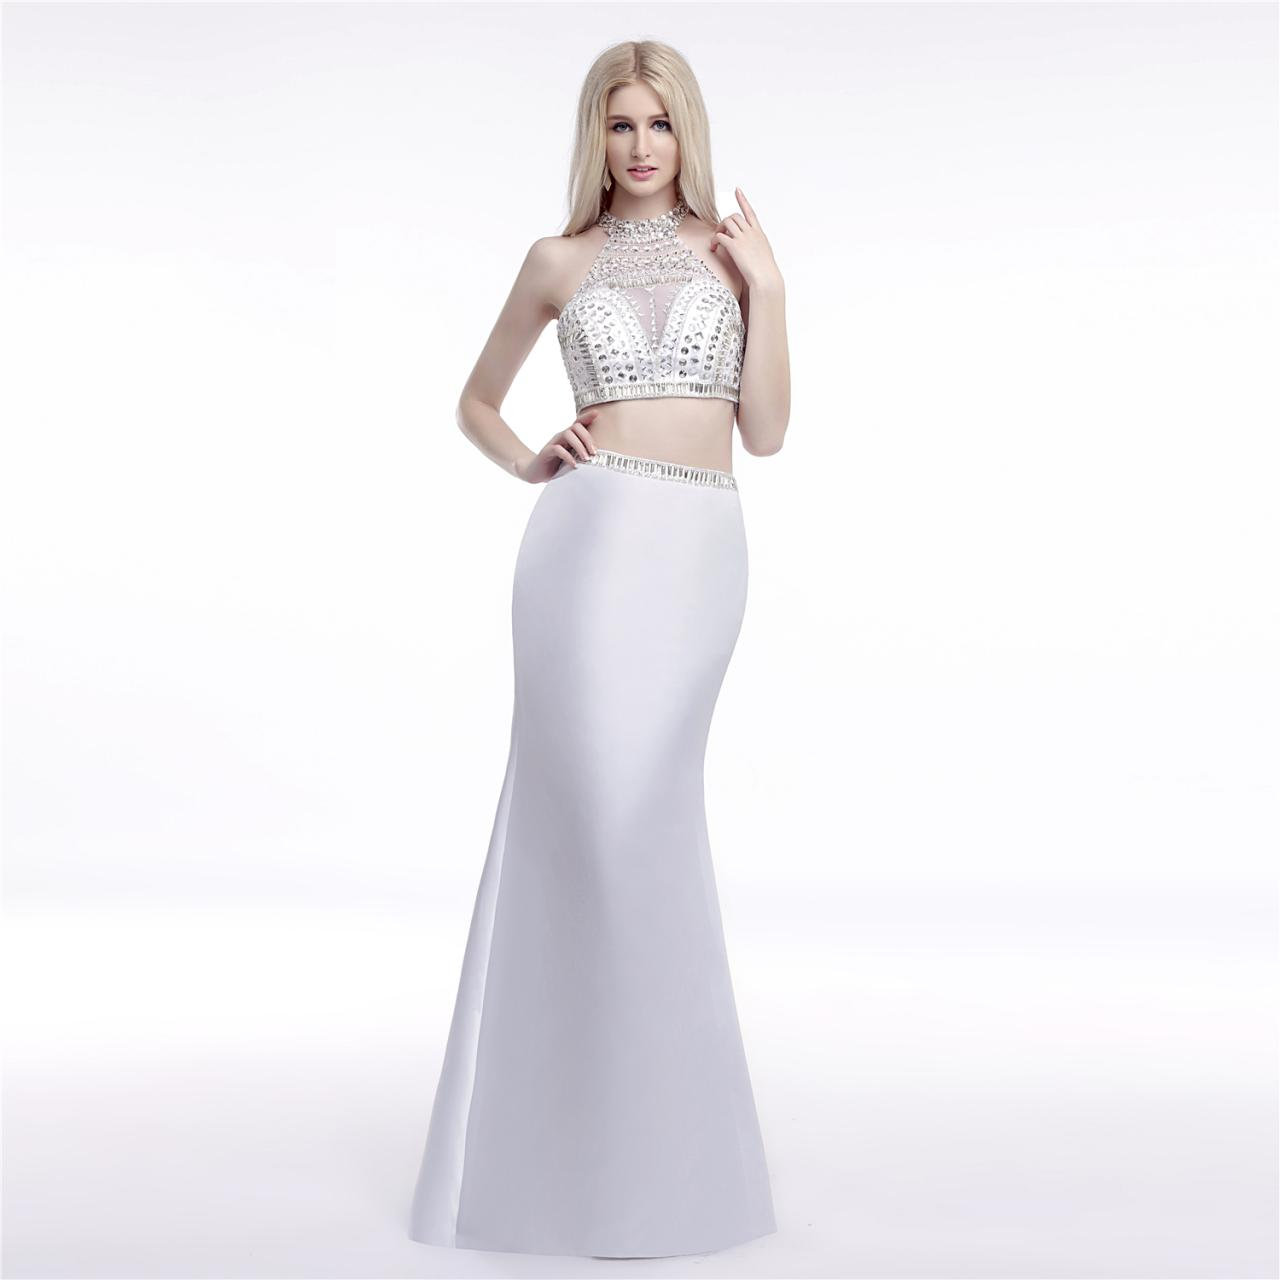 Bling Bling Two Piece Beading Prom Dress,Mermaid Prom Dresses,White Prom Dresses 2018,Formal Dress,Vestido De Festa